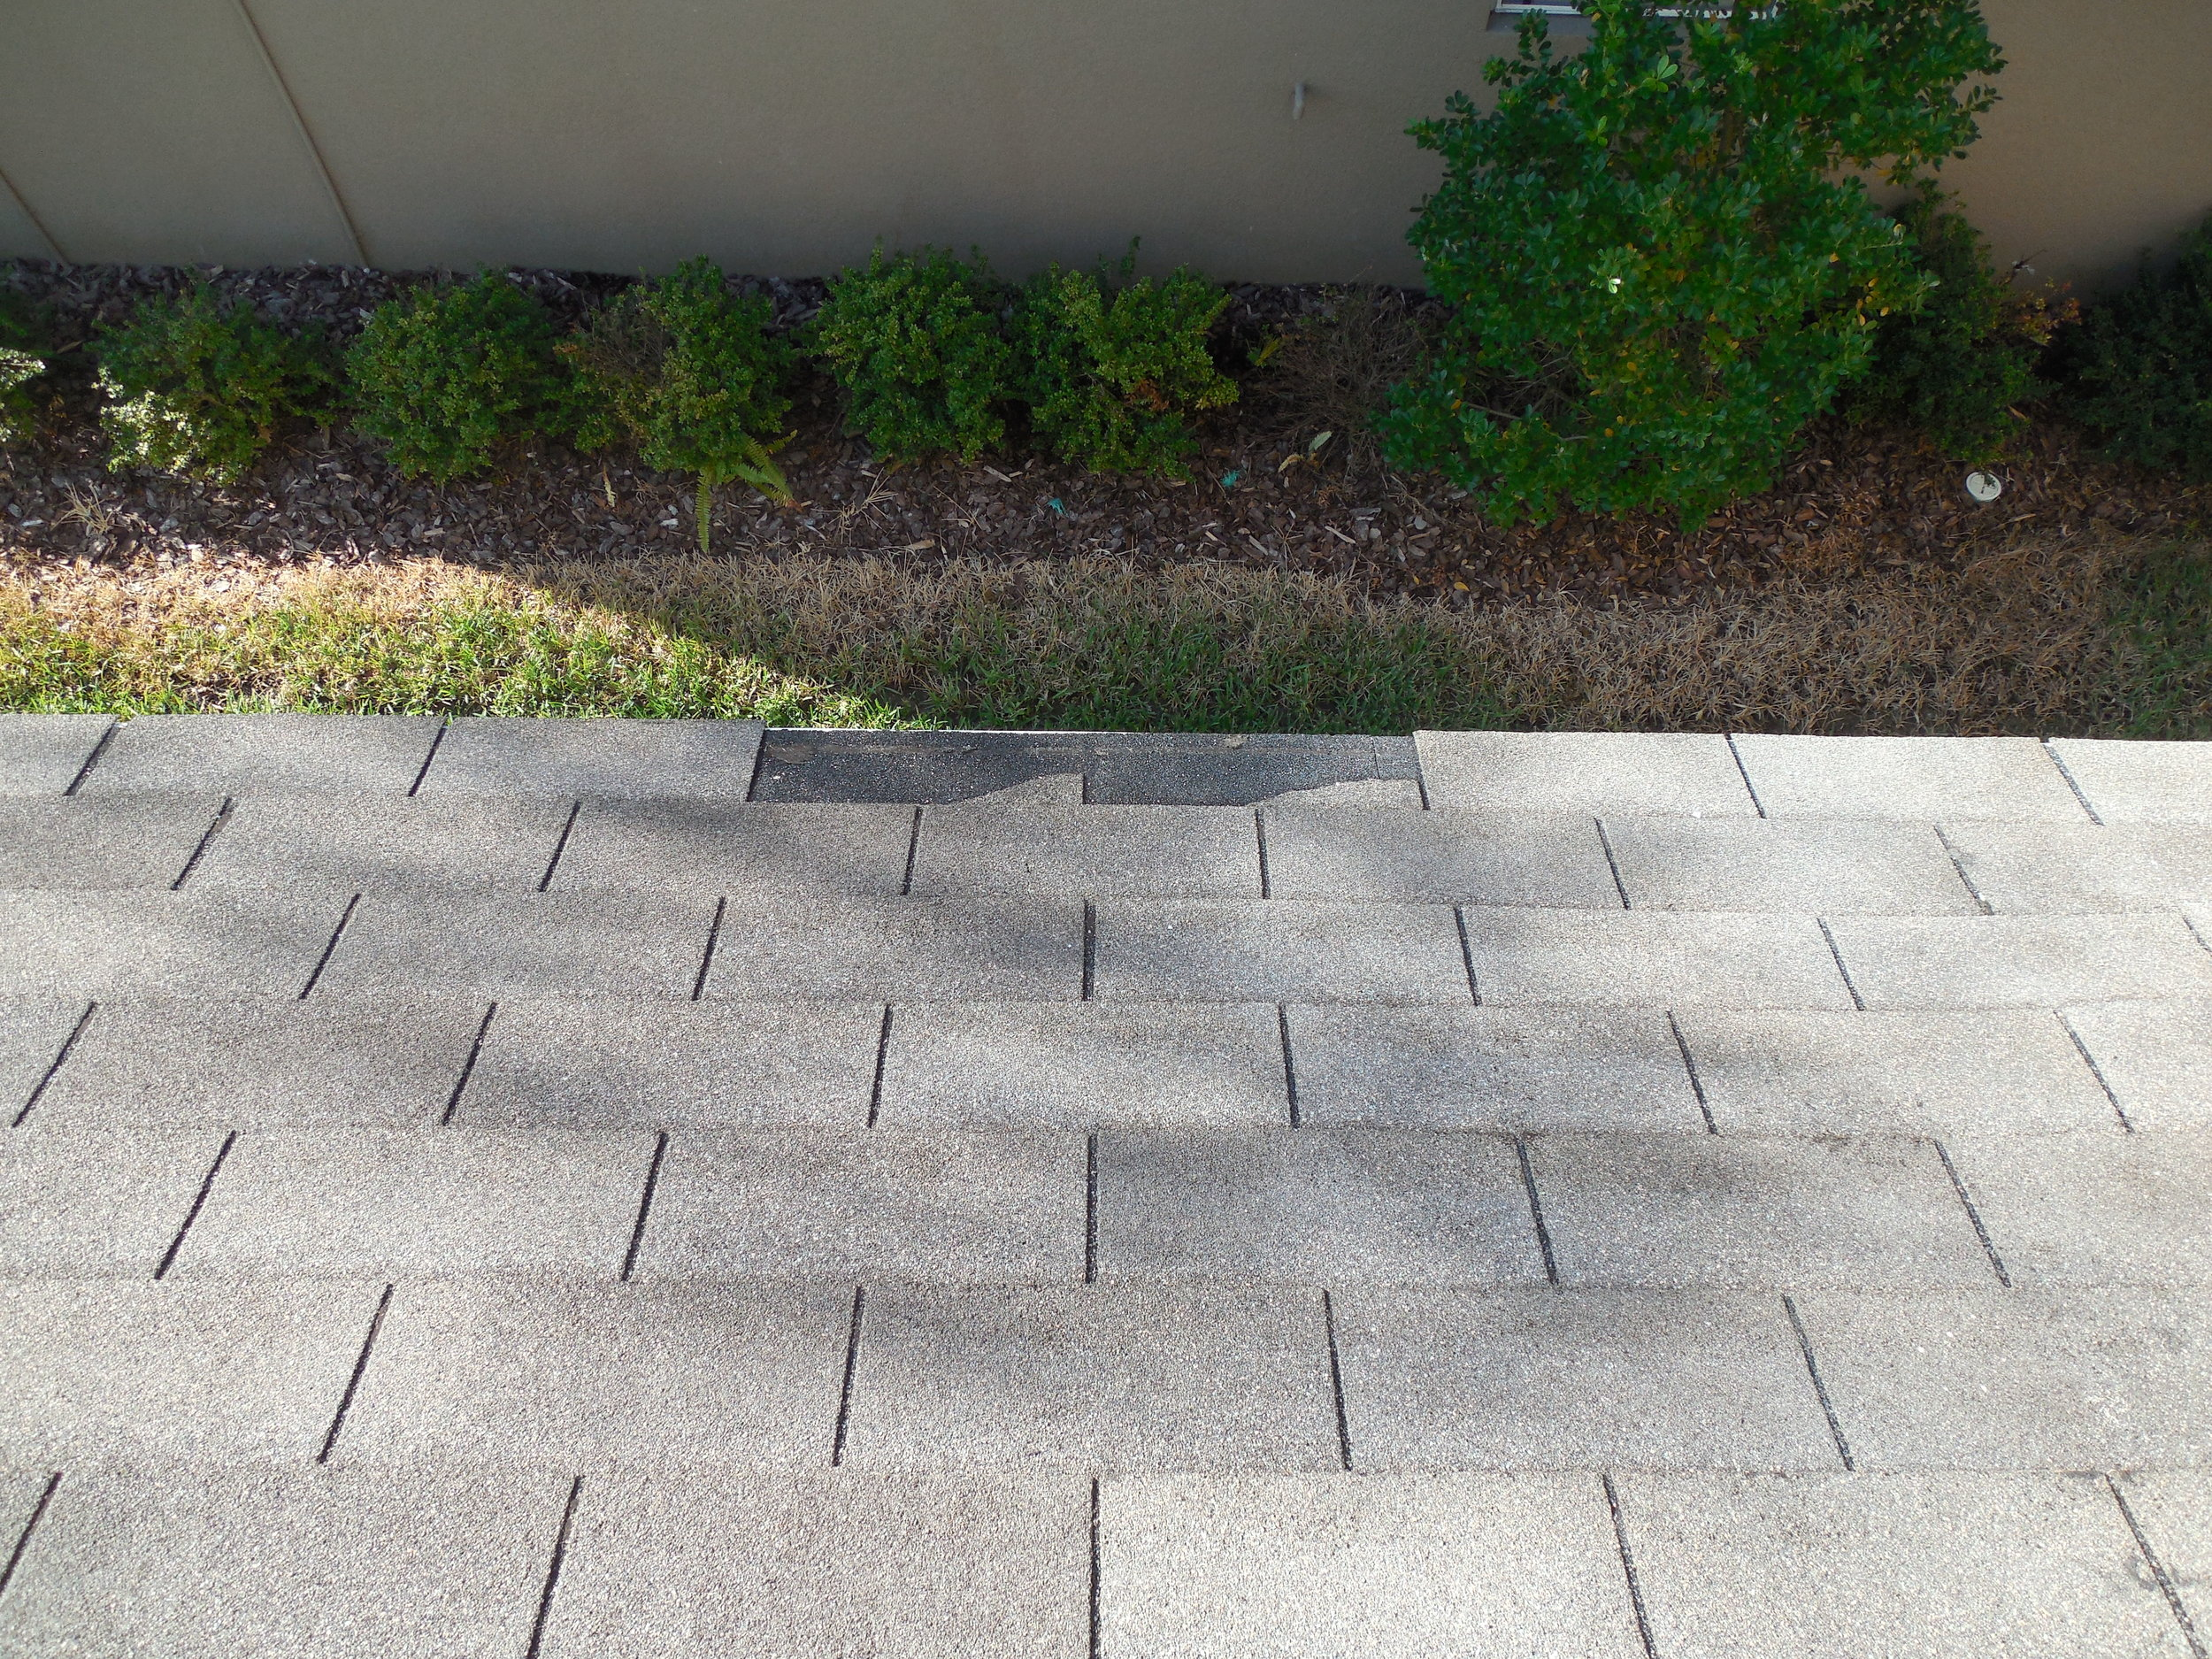 Missing shingles on a new construction home. Even new construction homes need inspections.